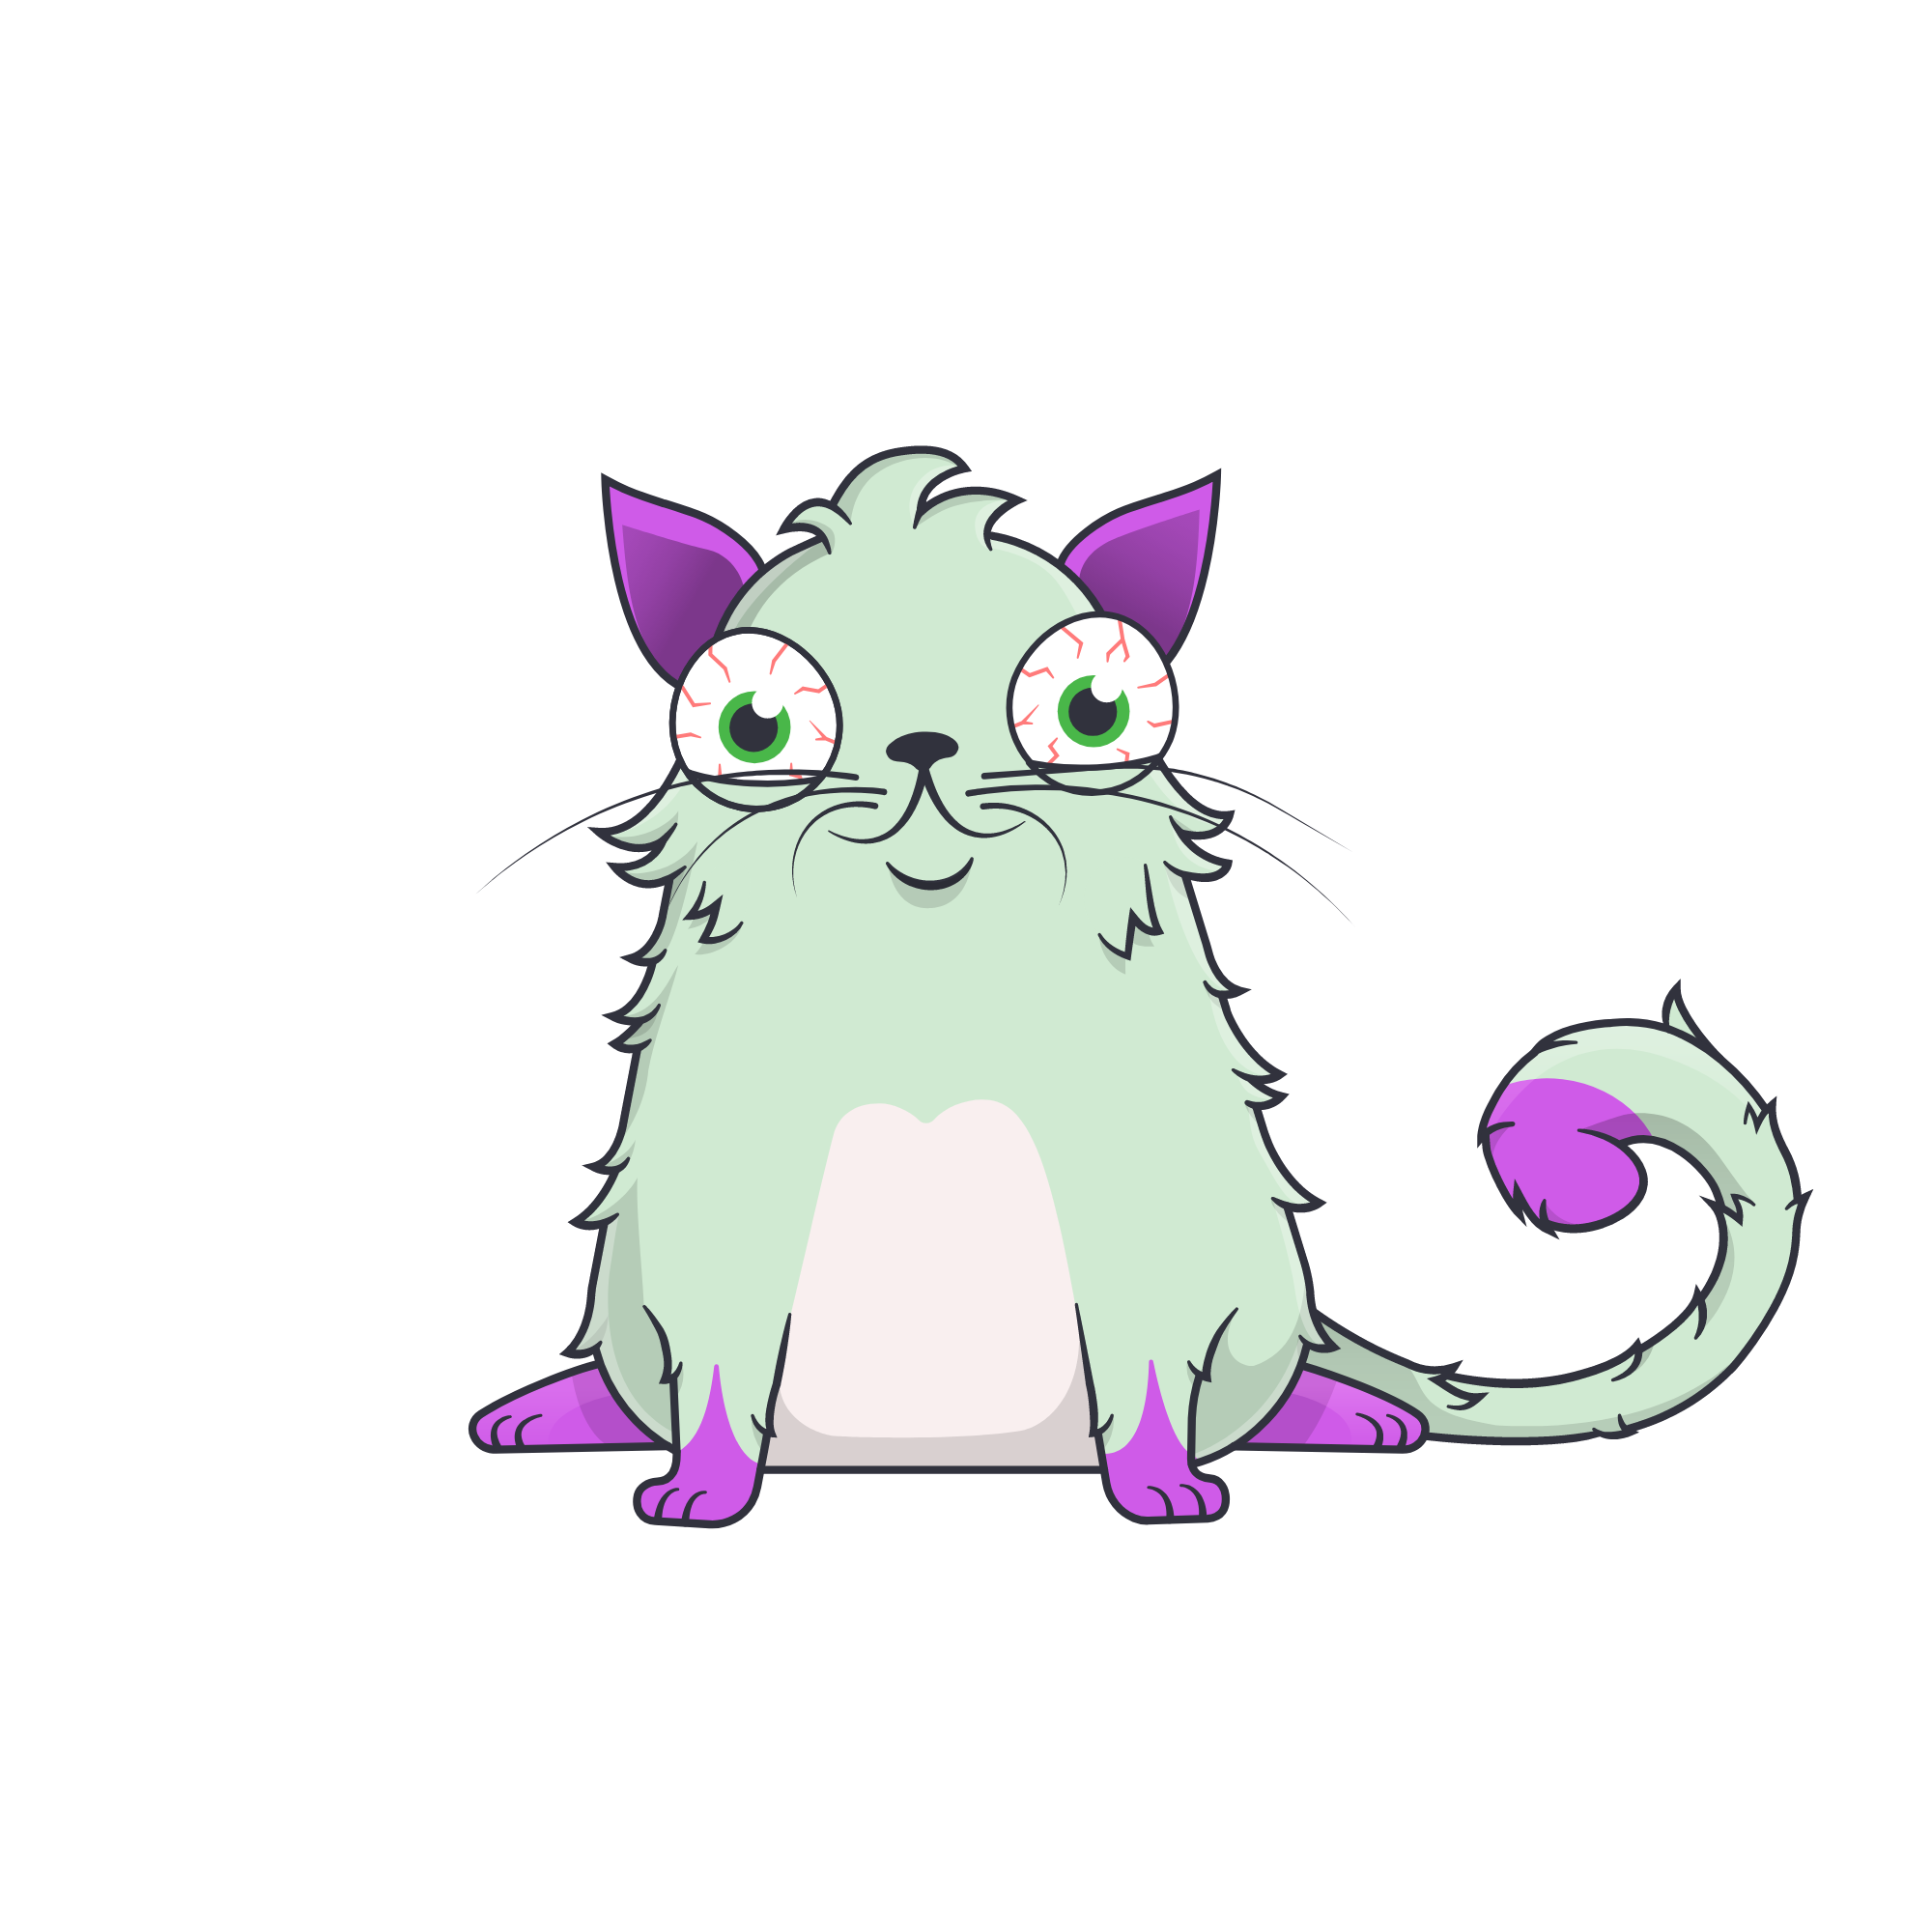 cryptokitty #1950581